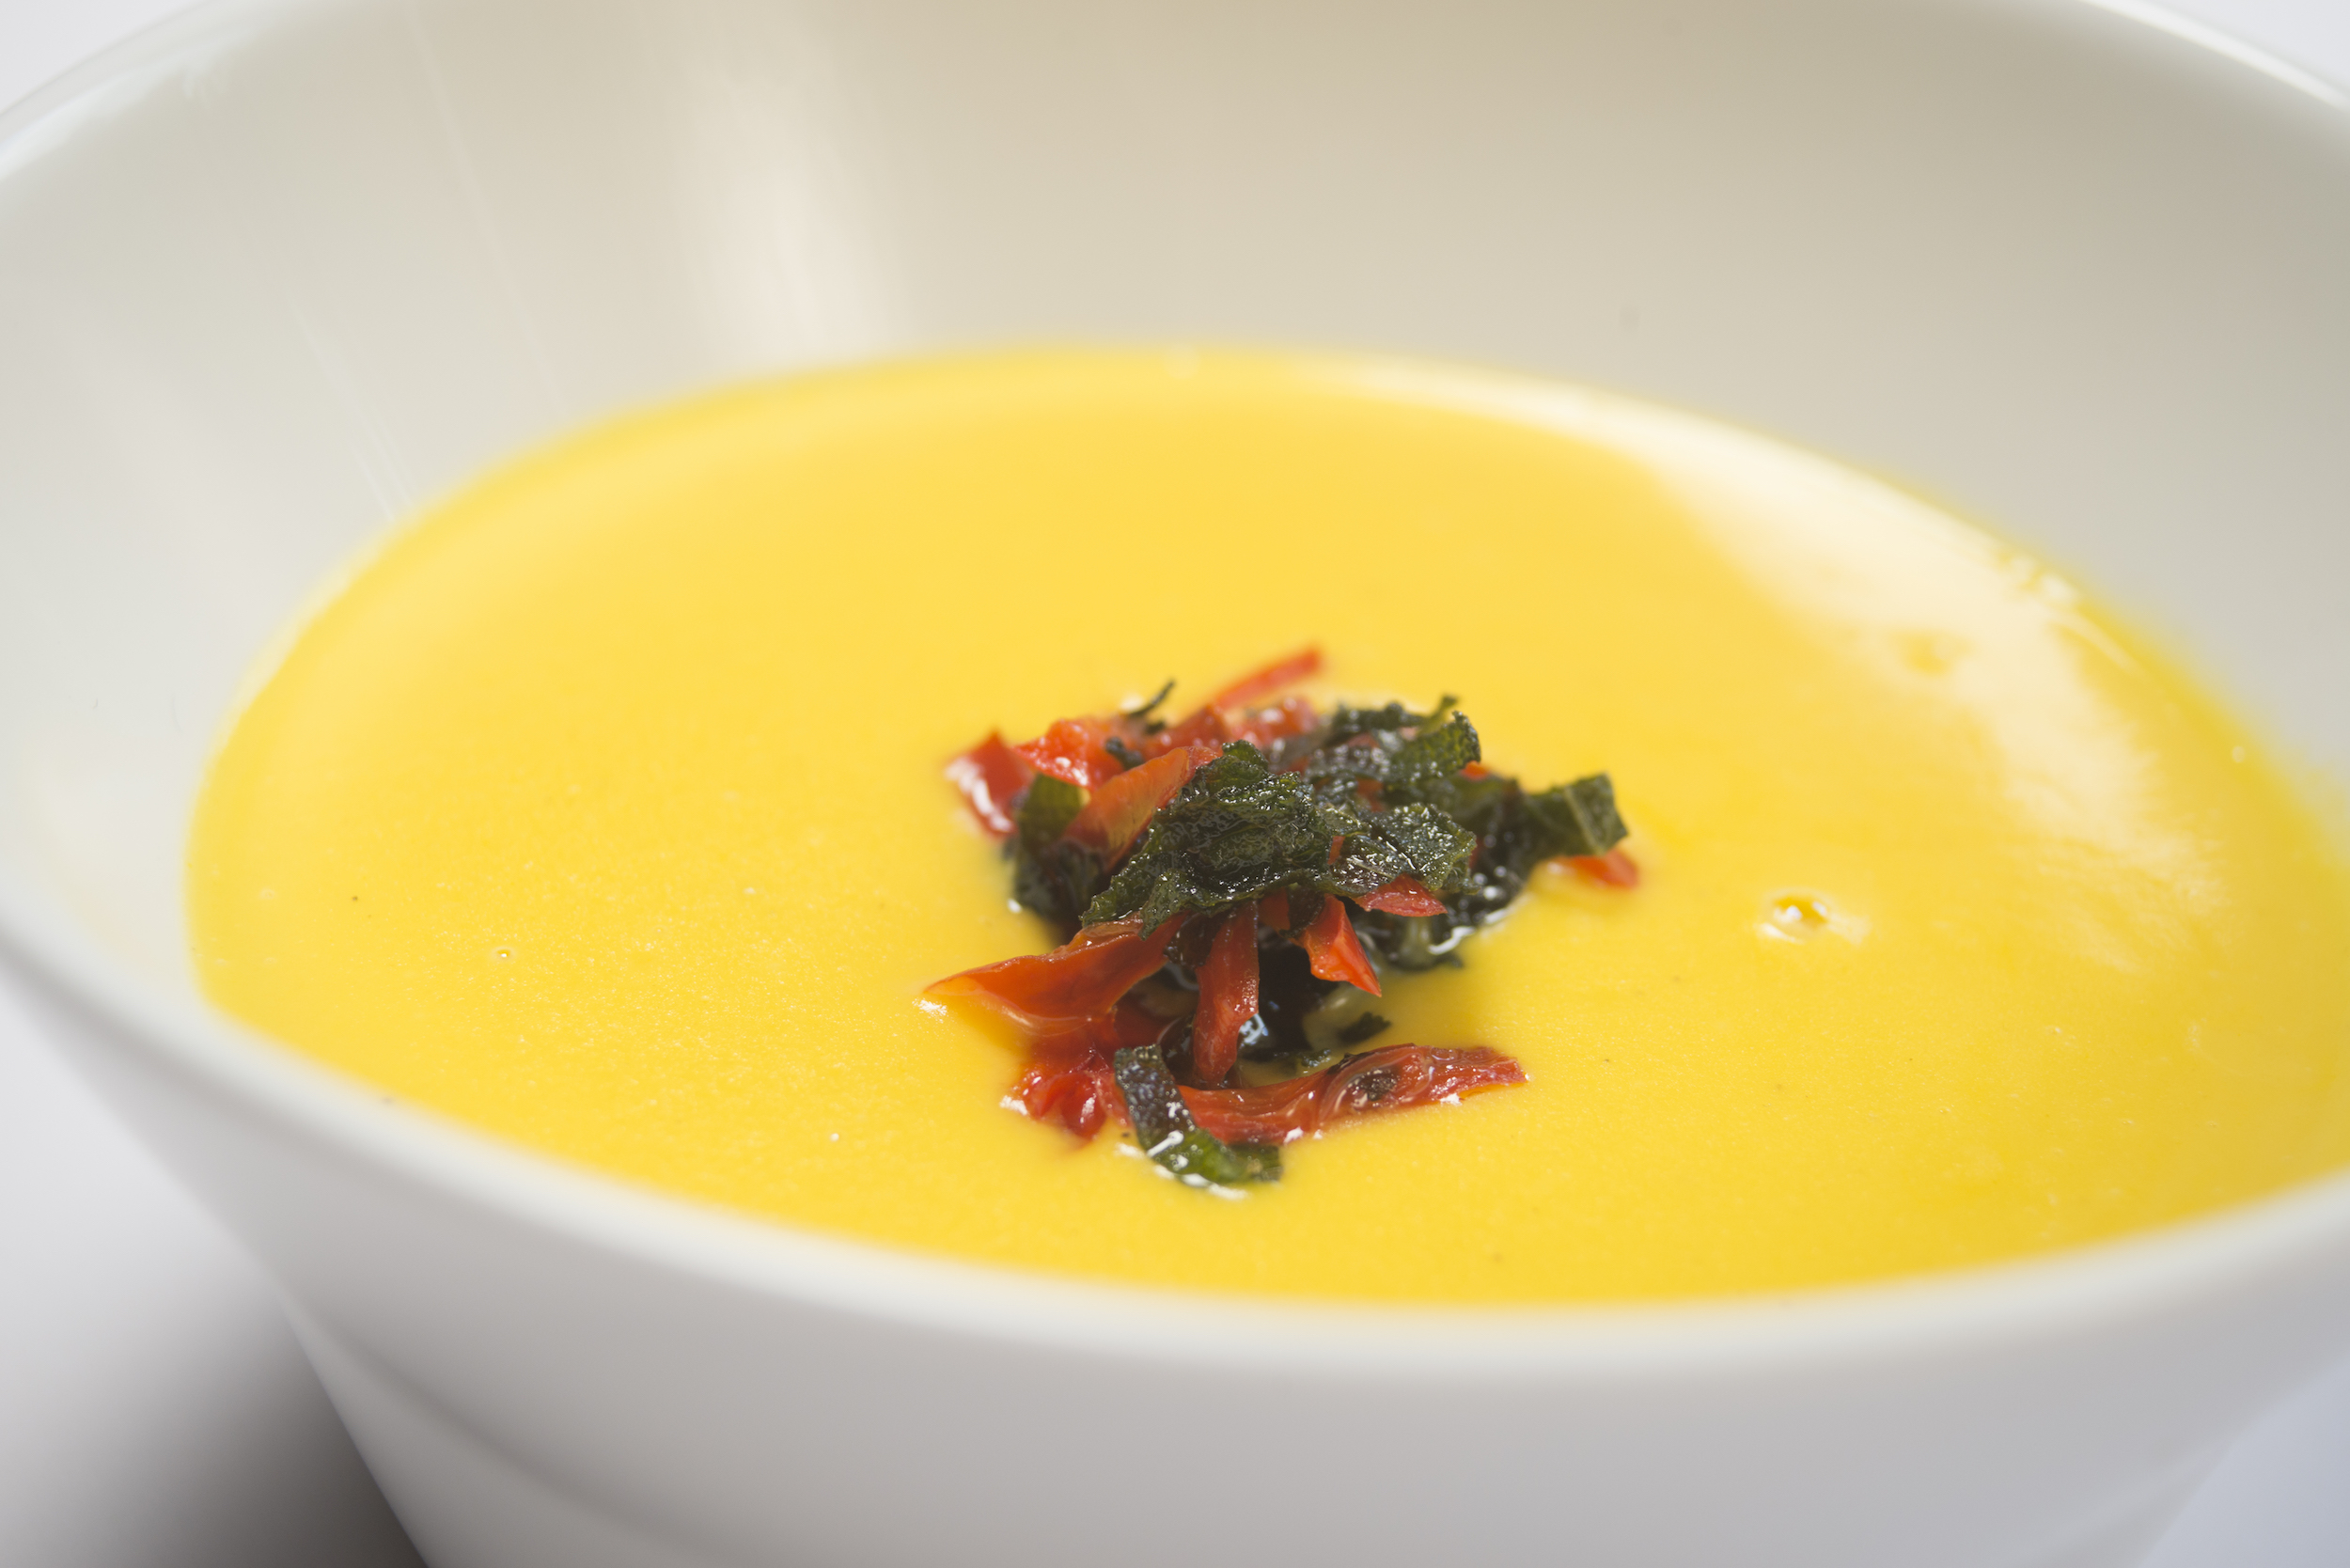 Pumpkin/Squash & Sage Soup (click on the image for the recipe)